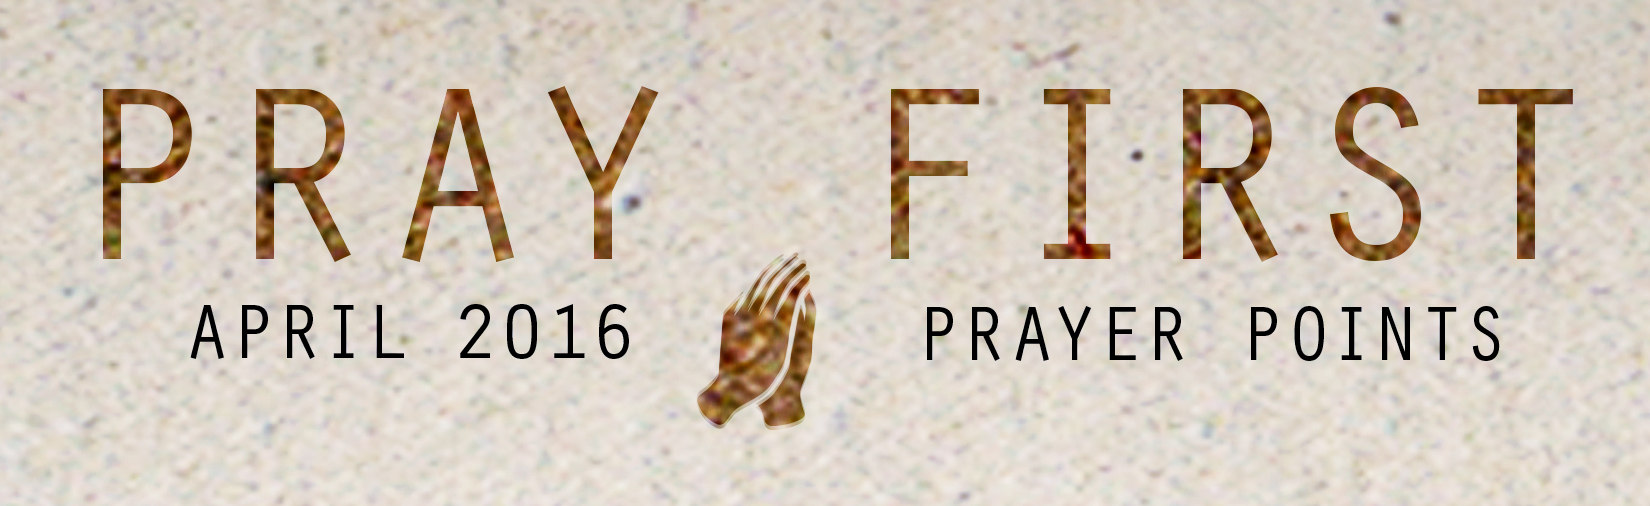 APRIL PRAY  ER POINTS     Access your copy of the April 2016 Prayer Points  HERE !